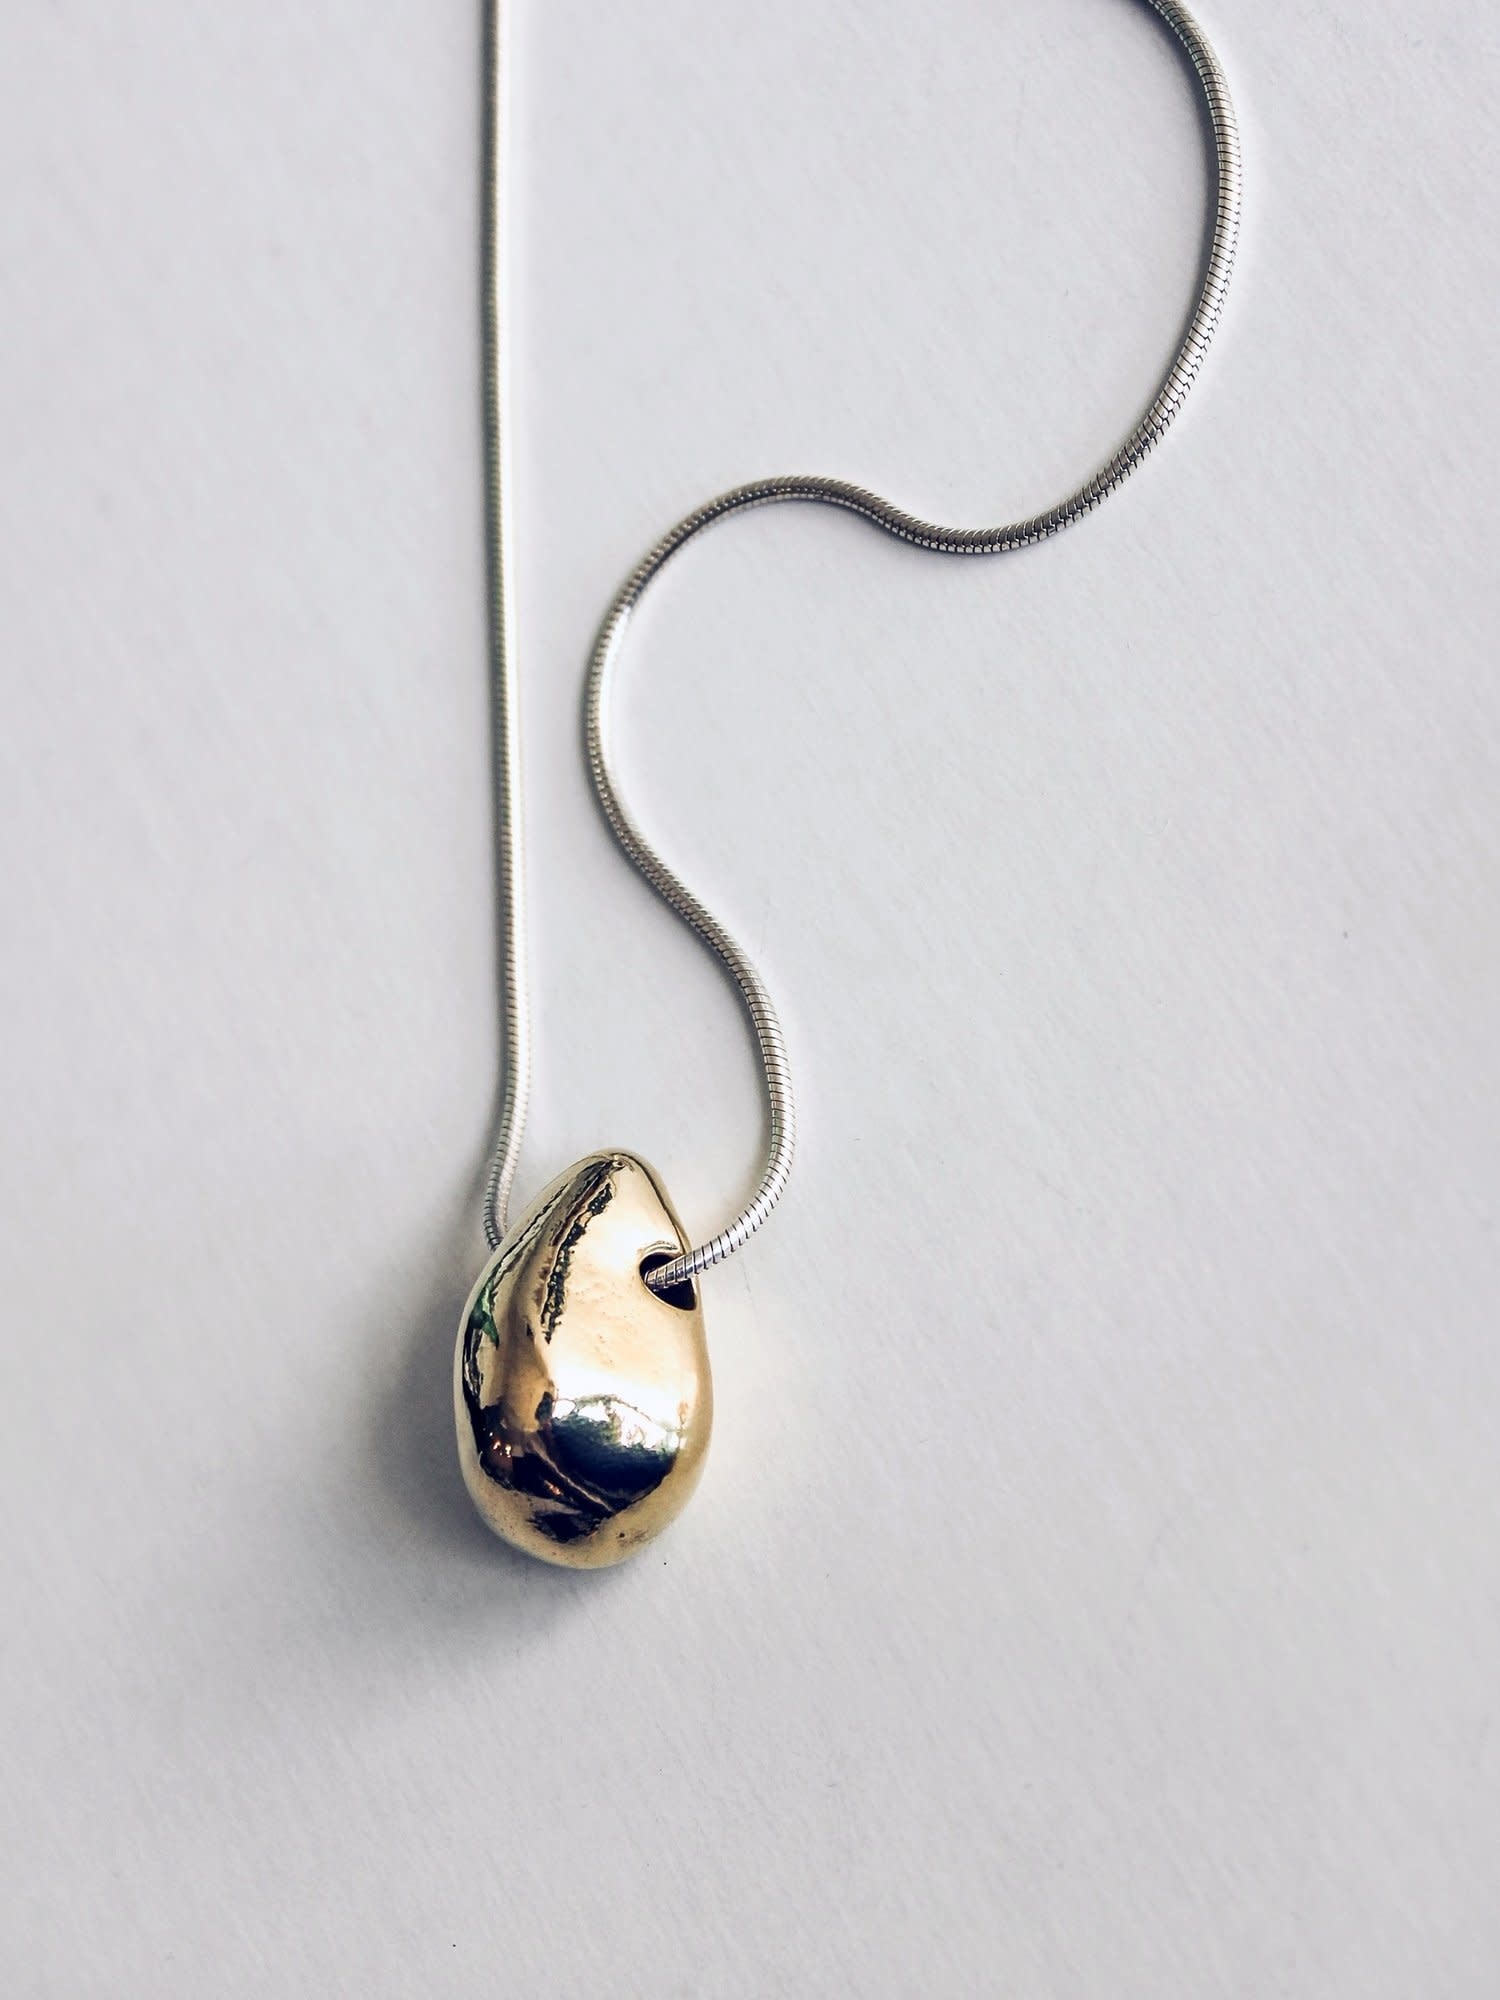 L.L.Y. Altelier Large Bean Necklace: Brass and Sterling Silver